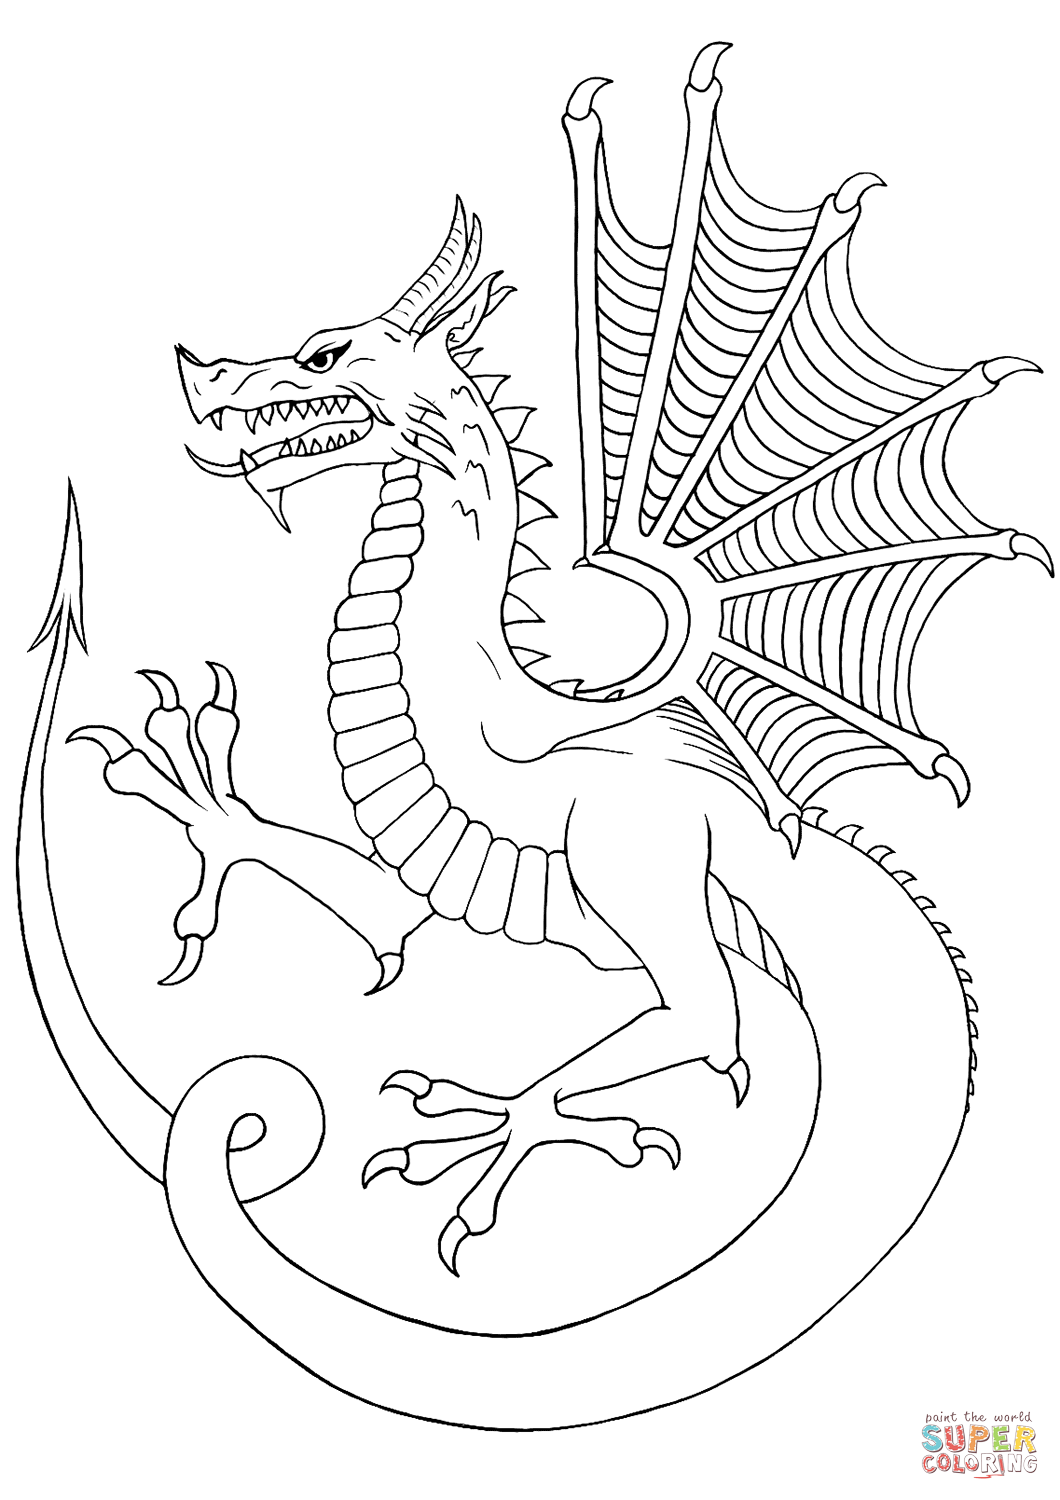 harry potter dragon coloring pages image from httpazcoloringcomcoloringdi4lab harry potter dragon pages coloring